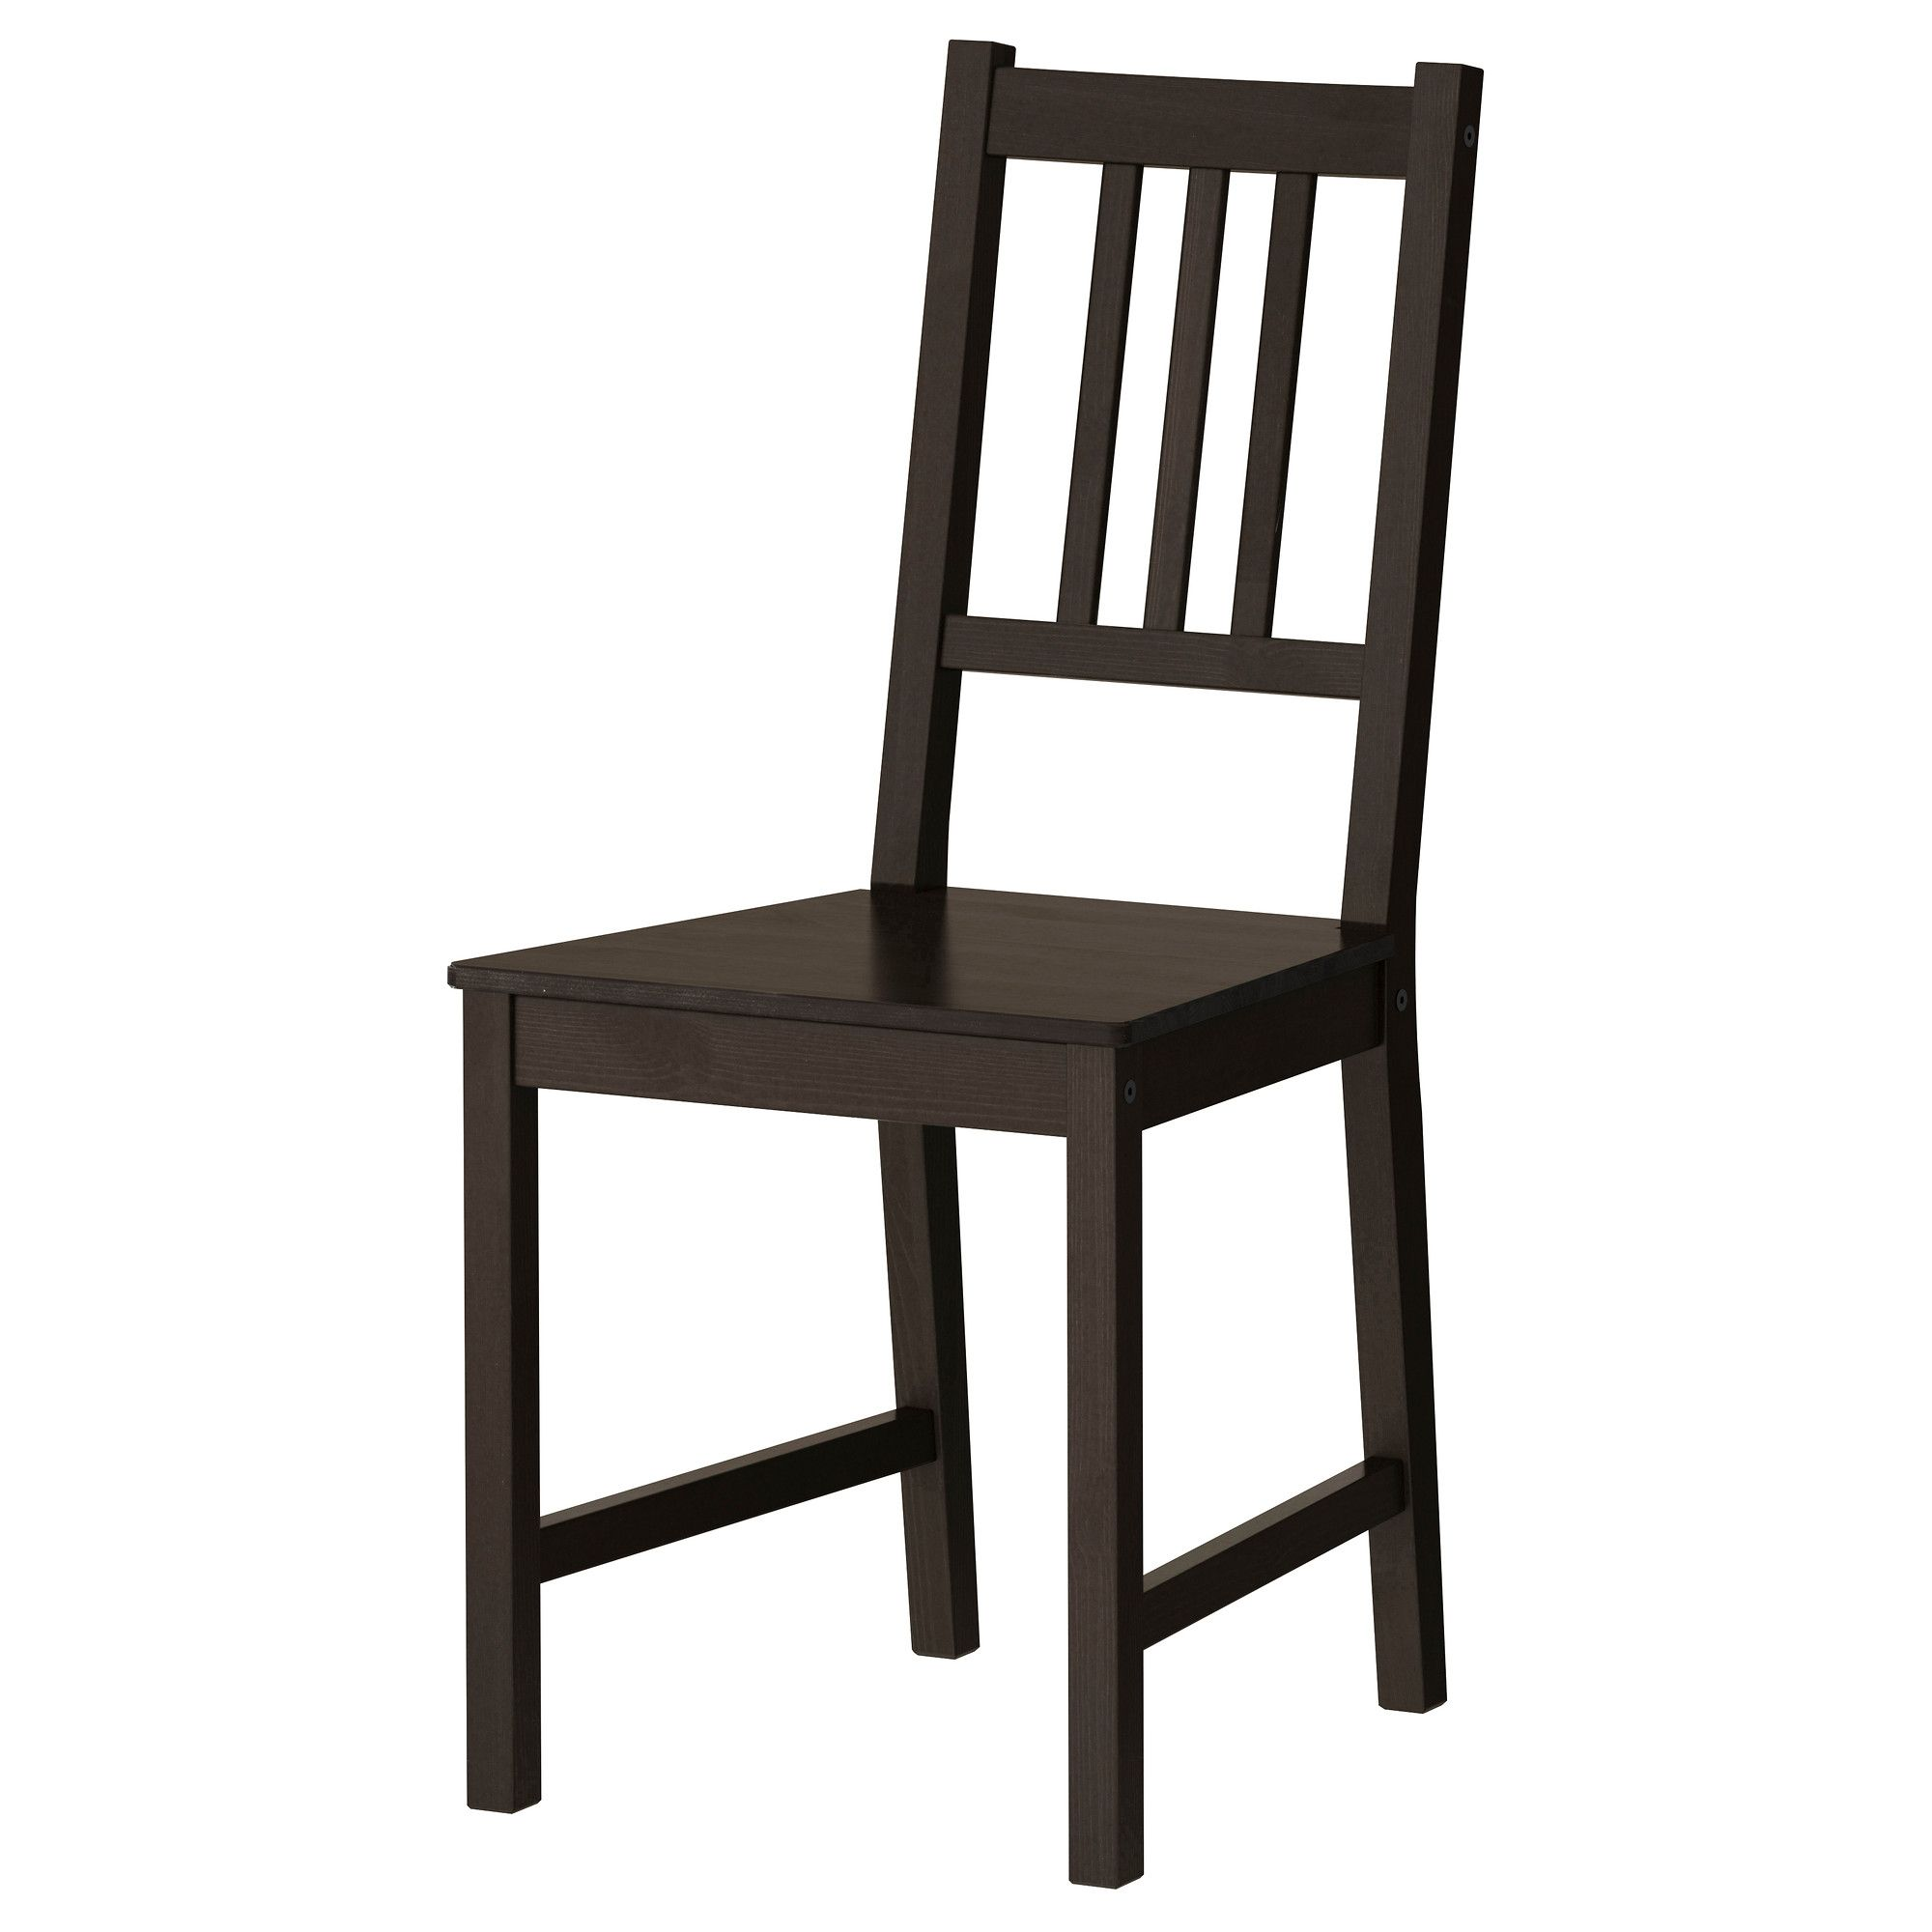 Ikea Wooden Chairs Folding Chair Covers Near Me Stefan Brown Black Mickey S Place Pinterest